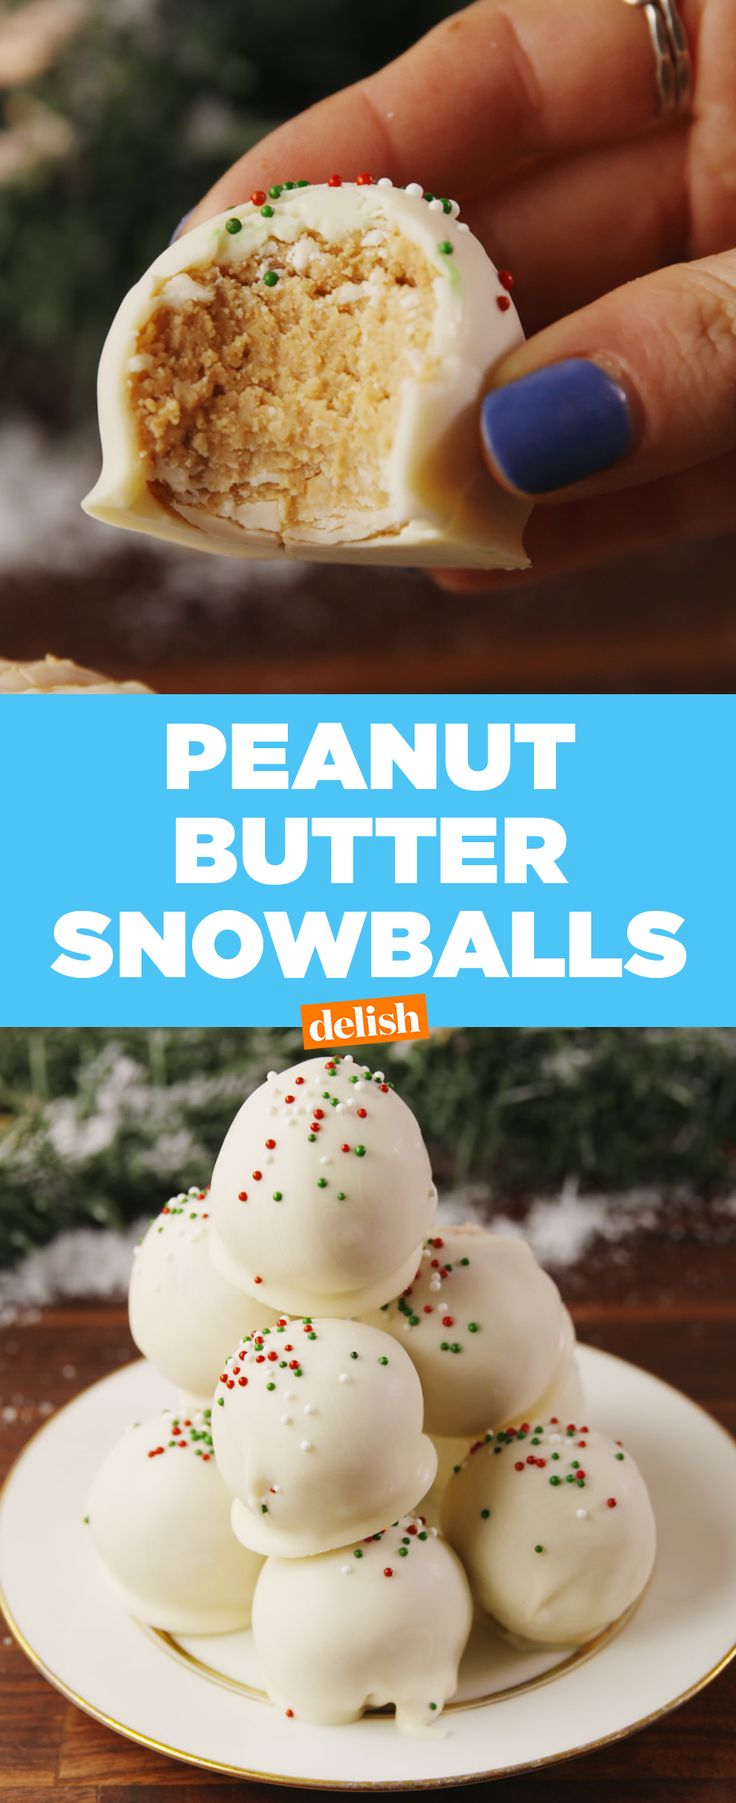 Peanut Butter Snowballs are the best upgrade to your favorite Christmas cookie. Get the recipe at Delish.com. #cookie #christmas #holiday #peanutbutter #dessert #recipe #easyrecipes